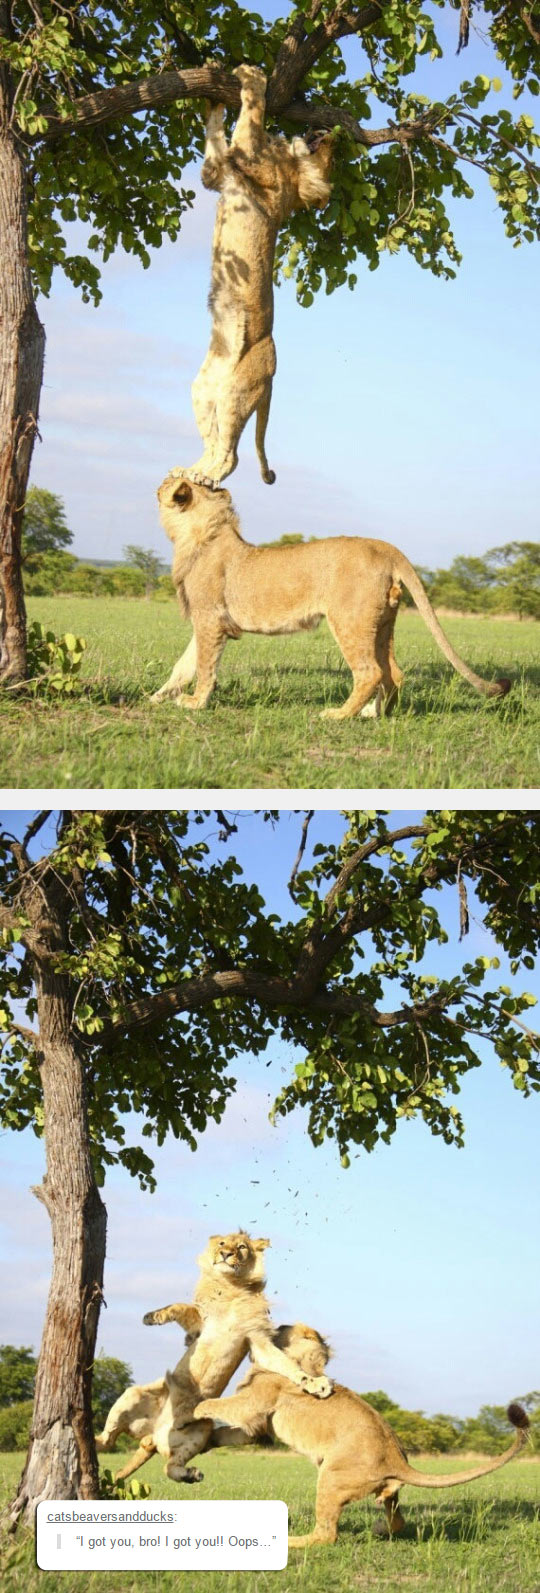 funny-lion-tree-scaling-helping-fell